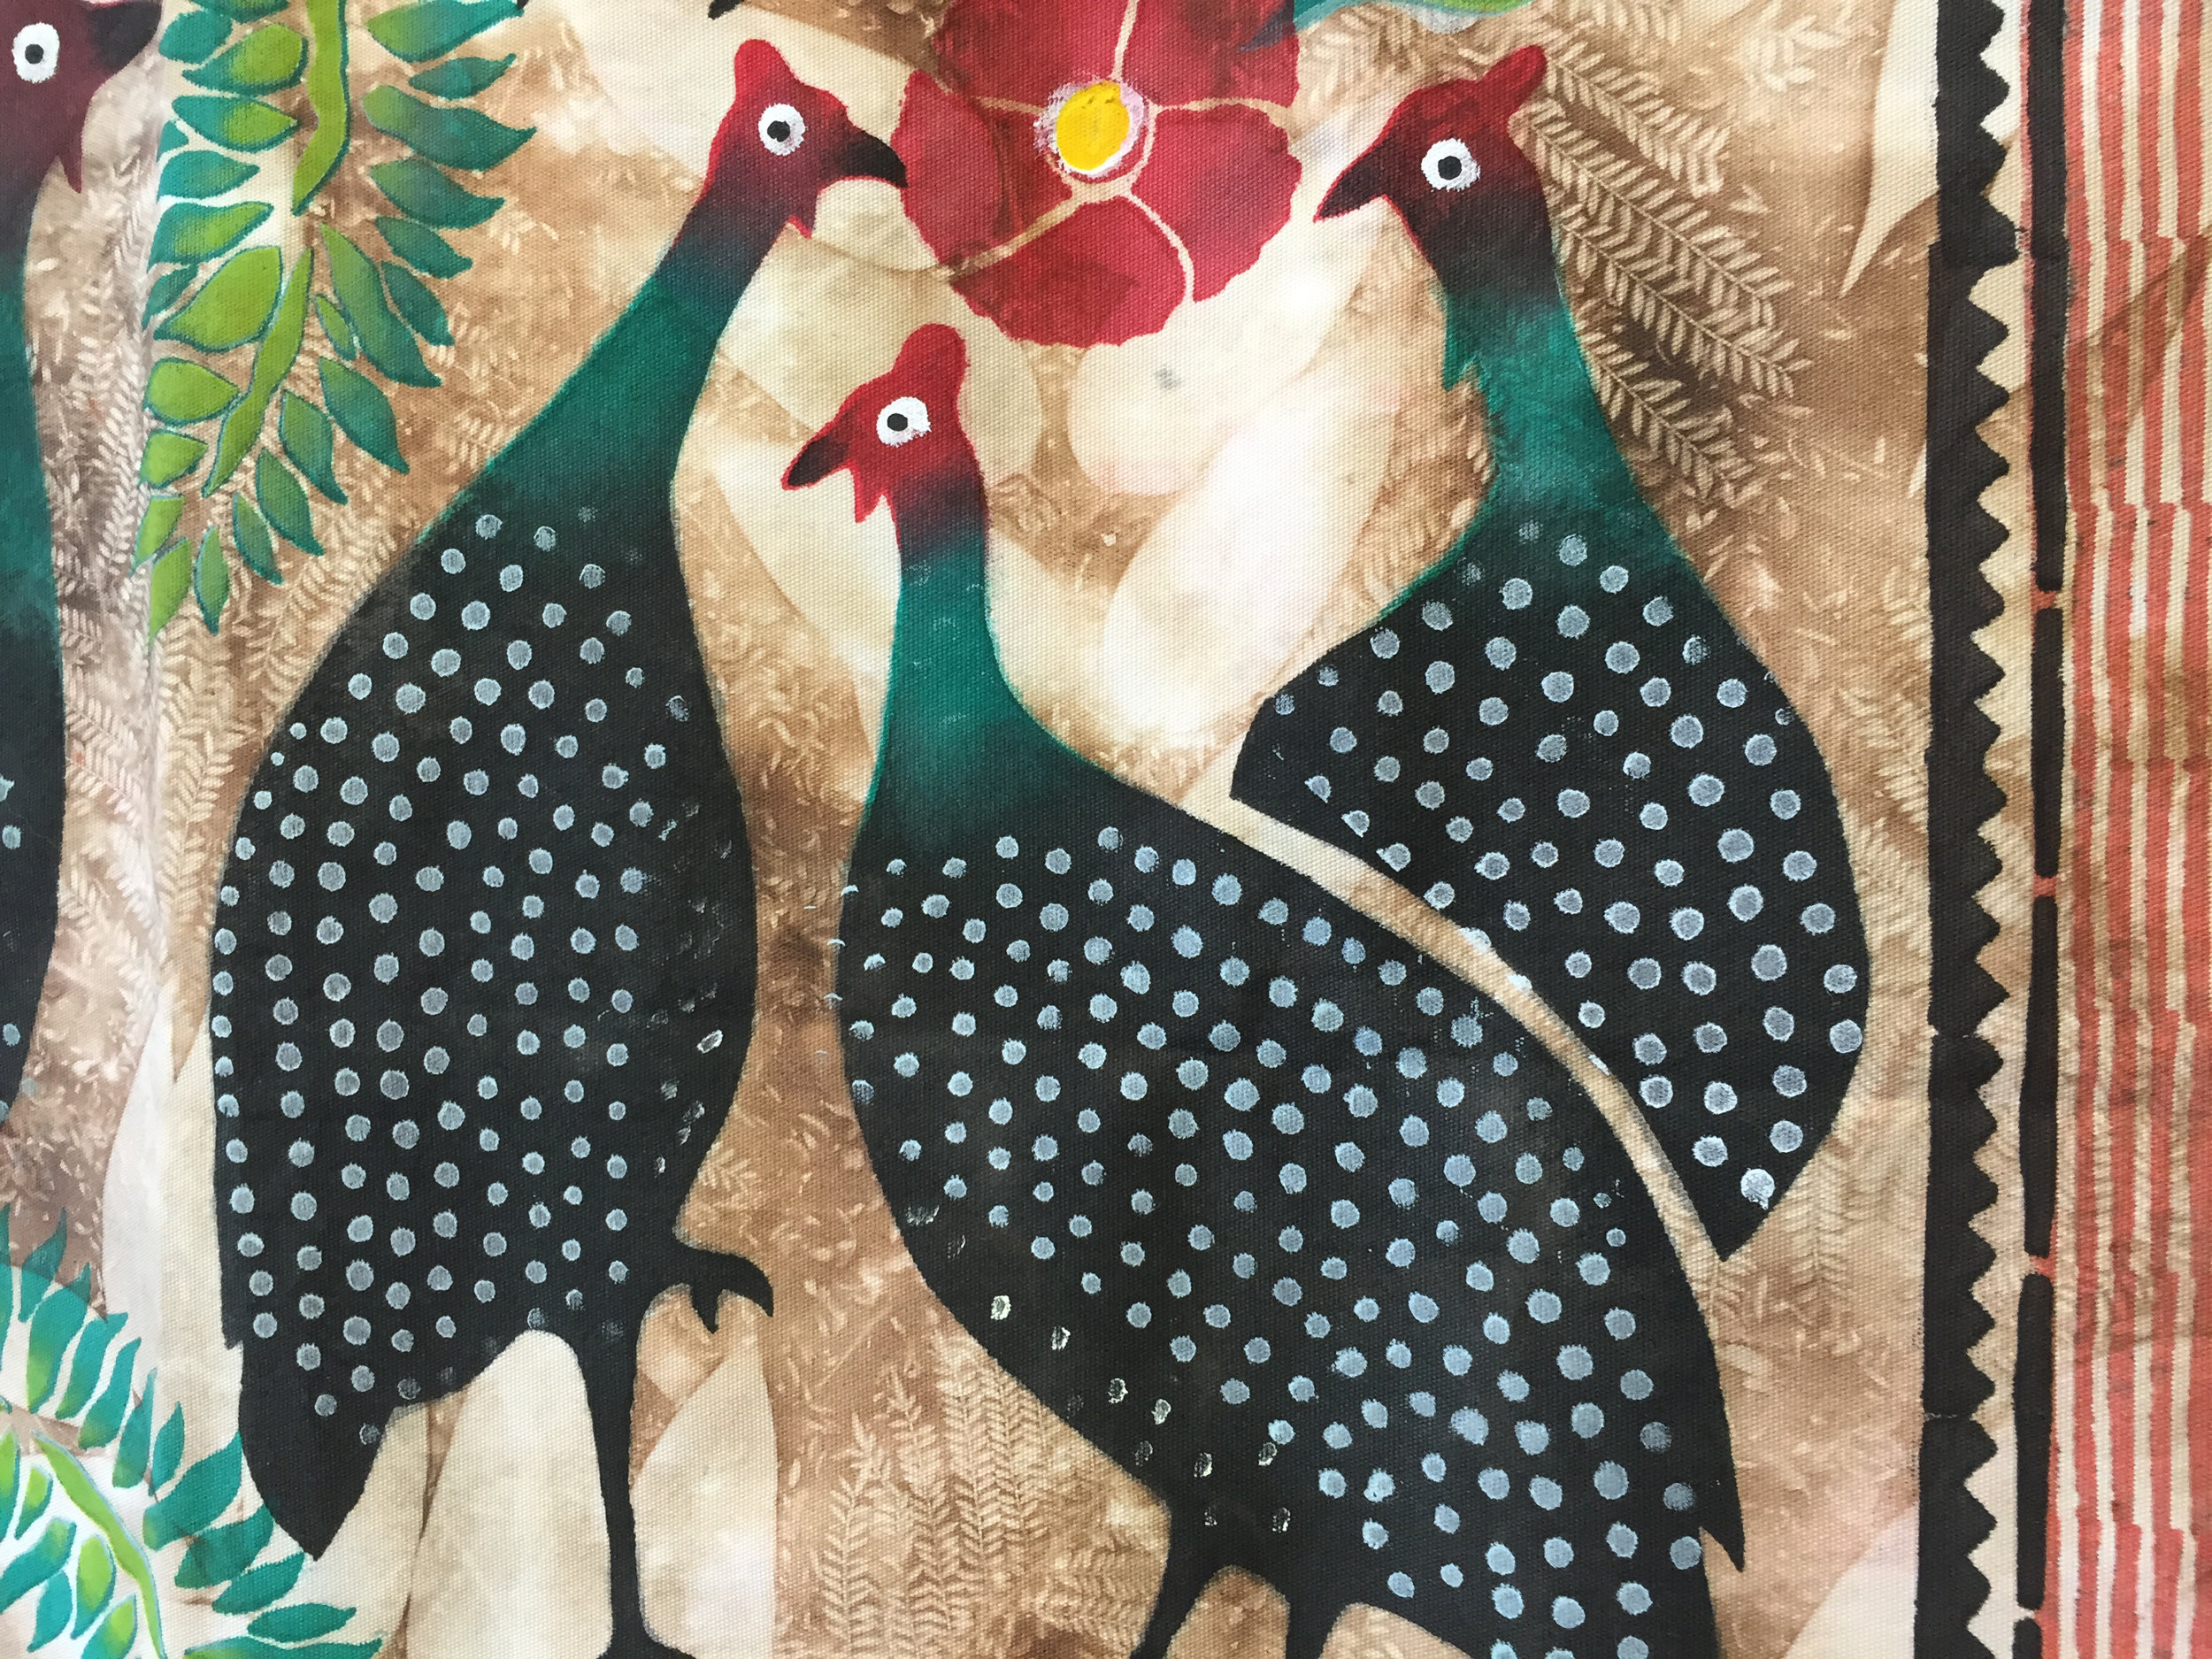 Detail from West African Fabric